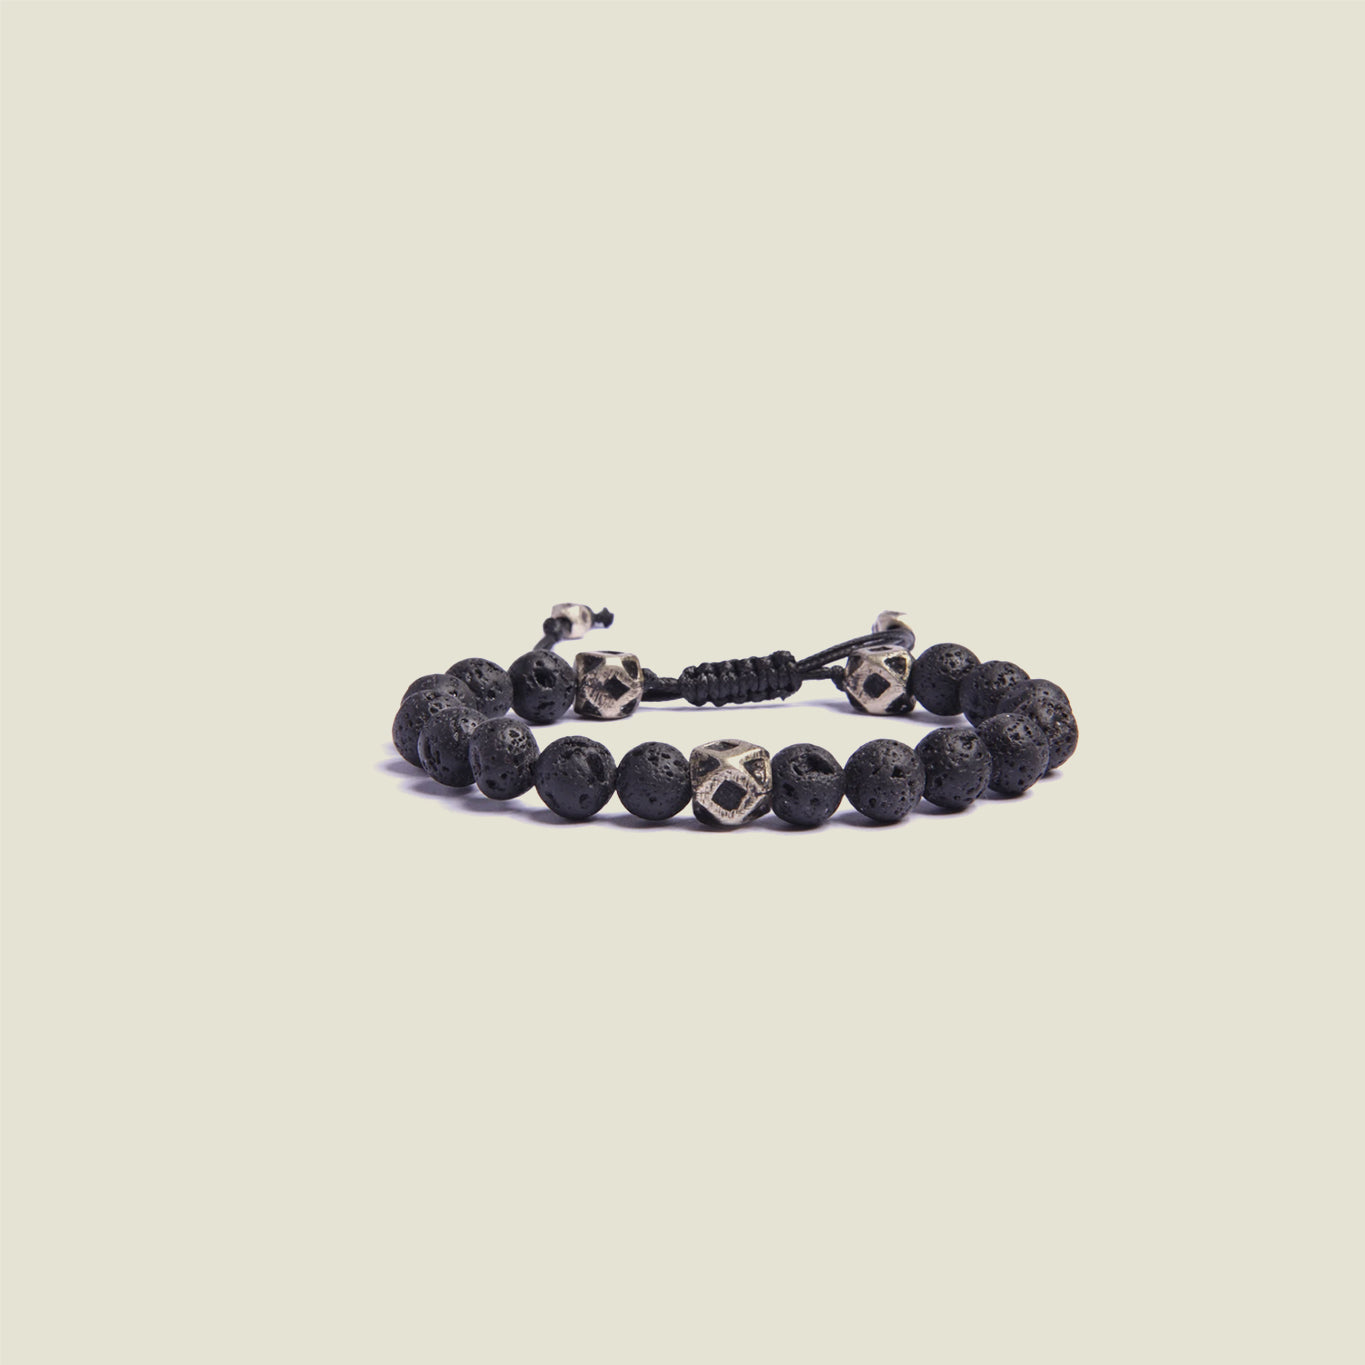 Lava Stone Silver Beaded Bracelet - Blackbird General Store